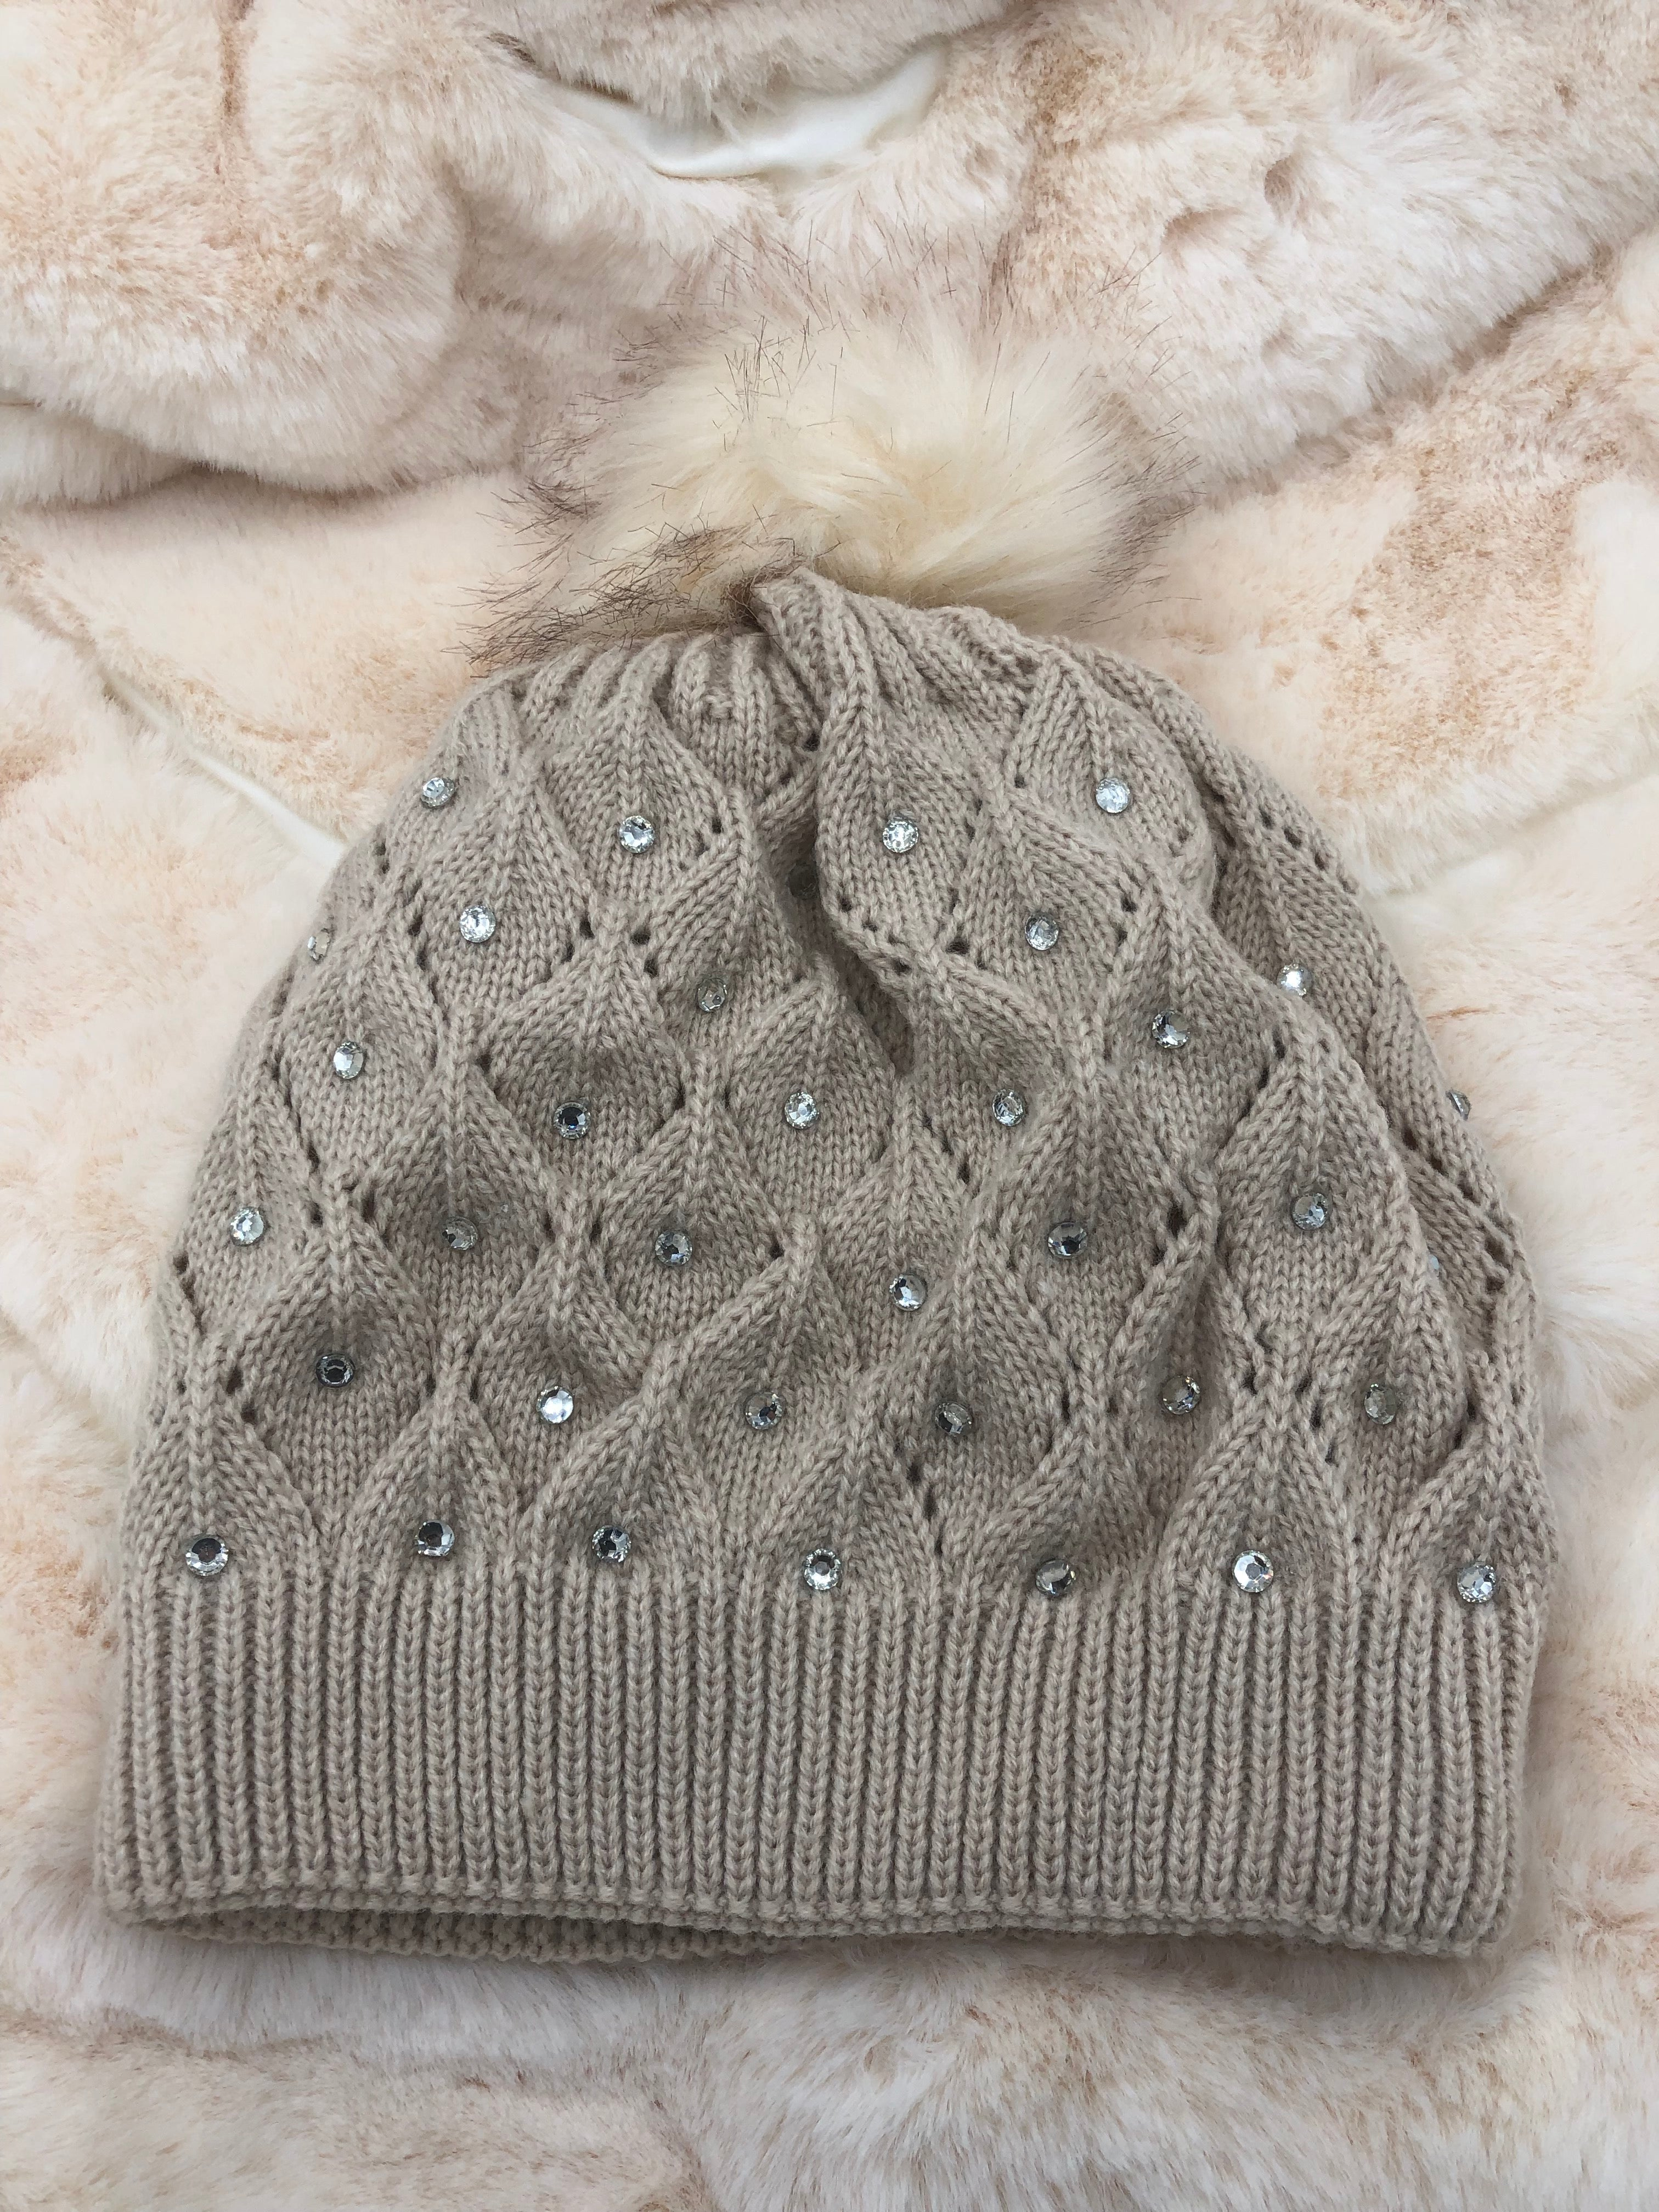 557be13e5bc Glam Cable Knit Faux Fur Pom Pom Beanie Hat